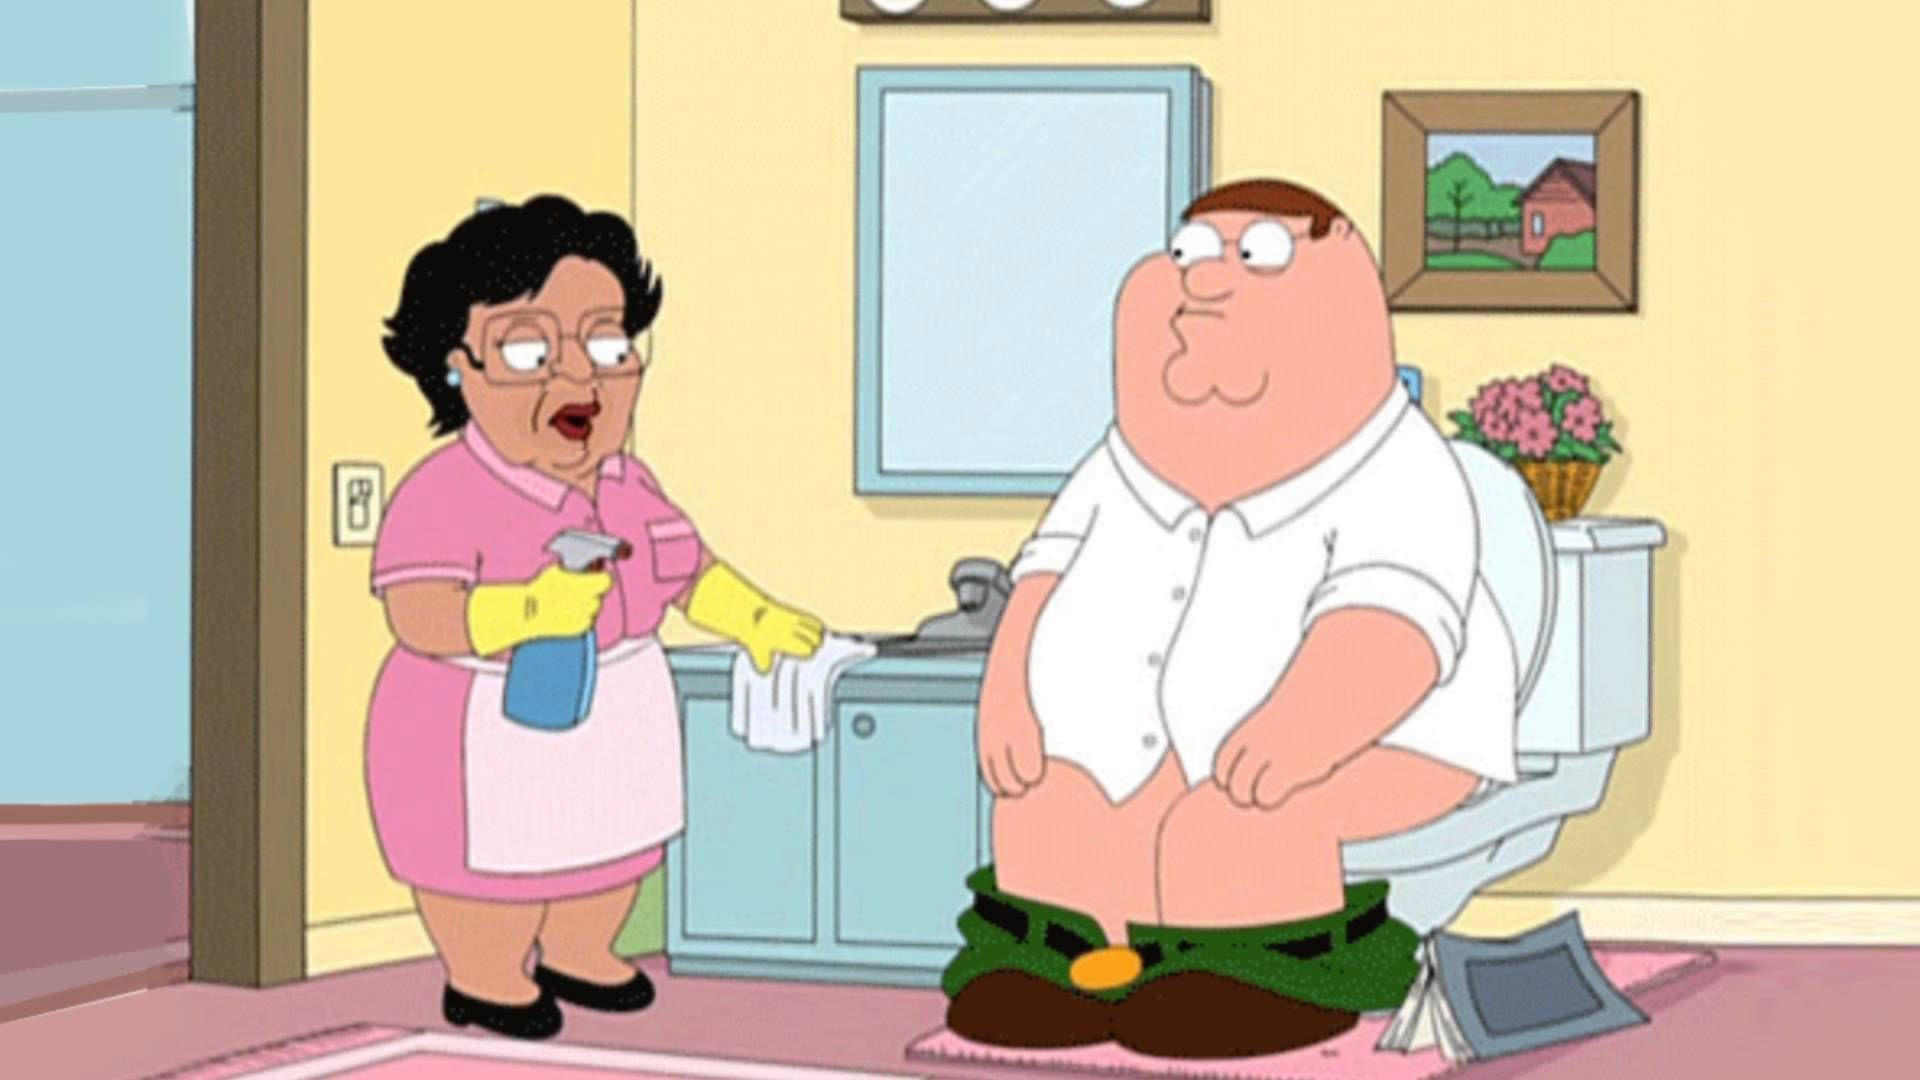 How Do Your Cleanliness Habits Compare To Everyone Else Family Guy Awkward Moments Funny Memes